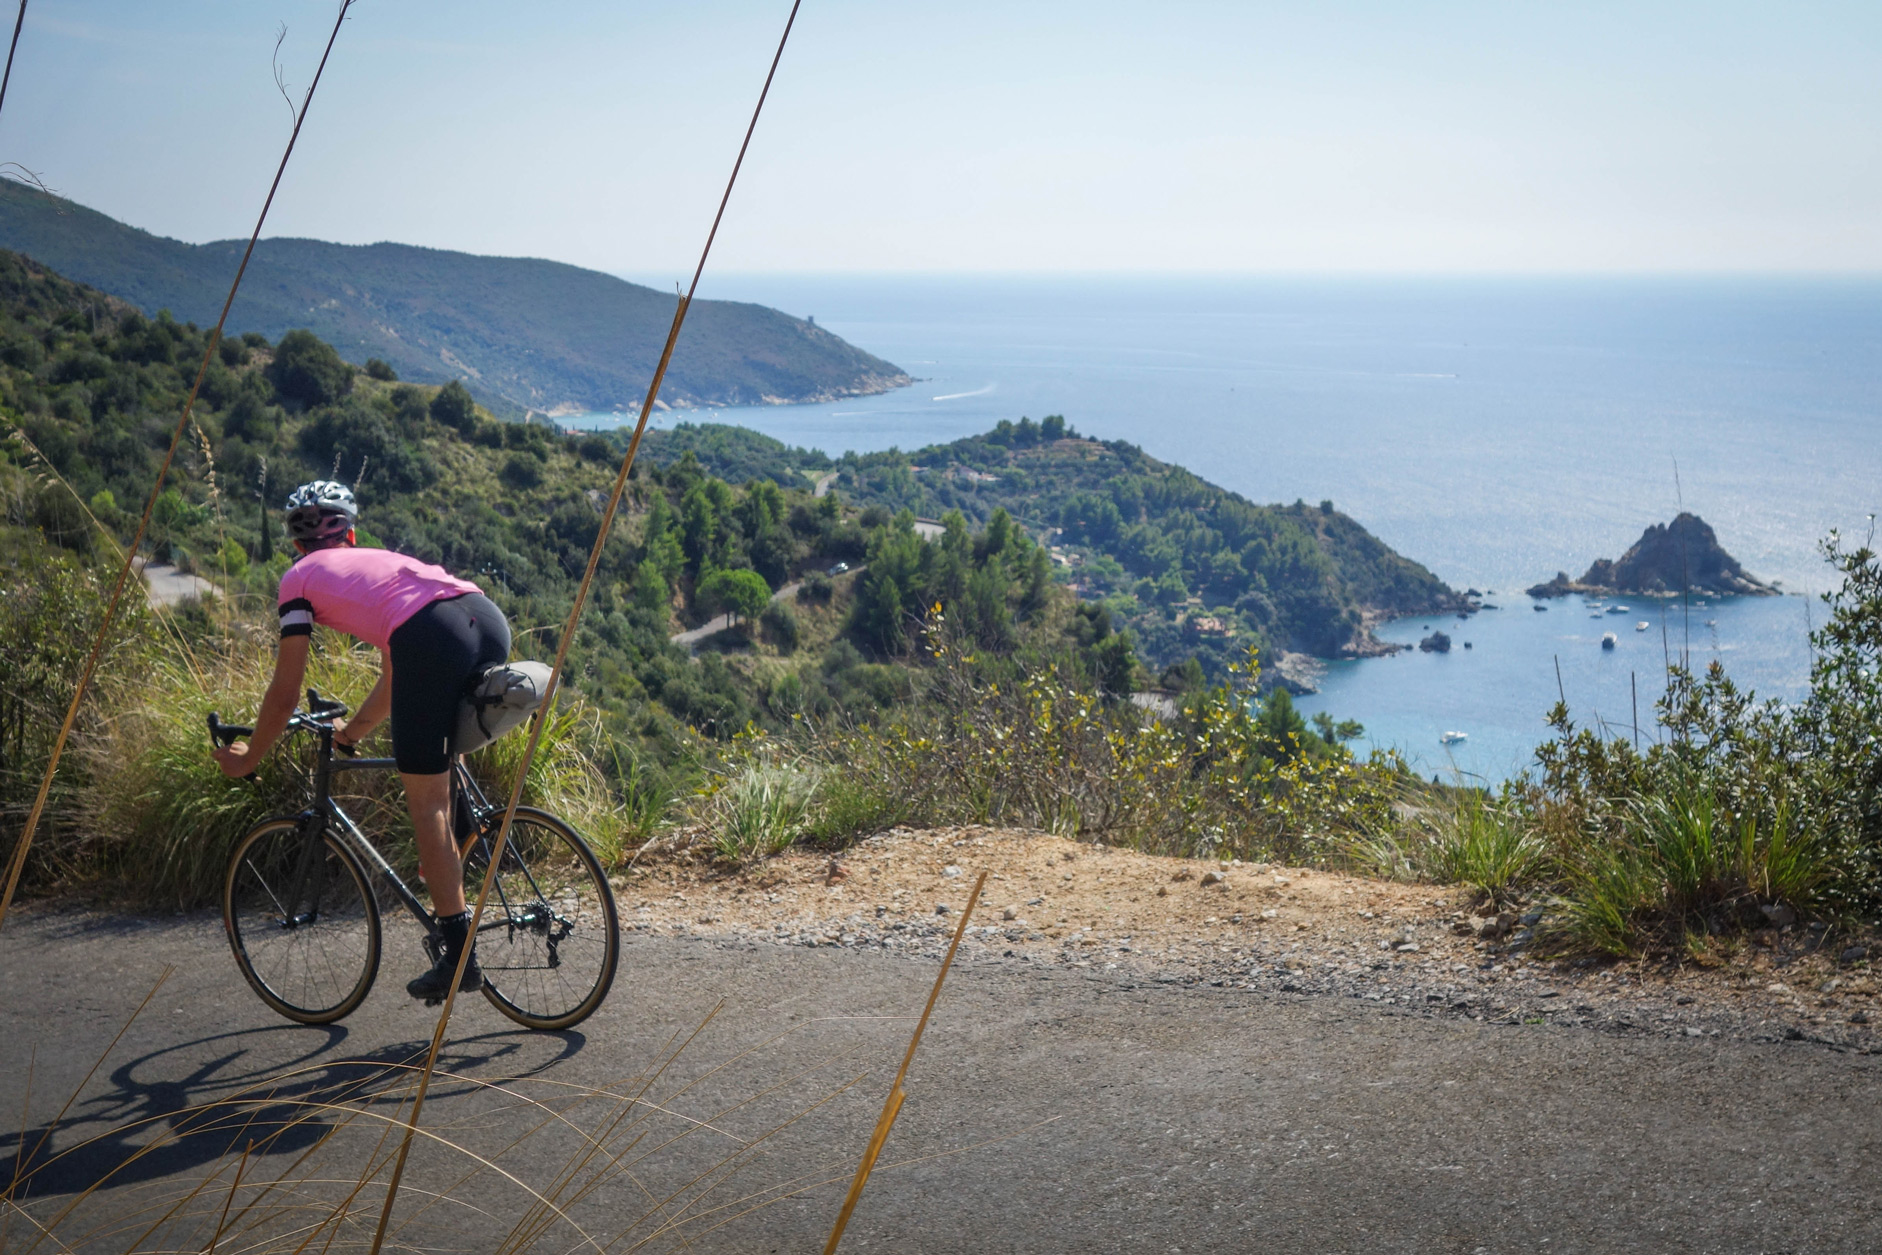 argentario-stanca-road-erman-bike-ride